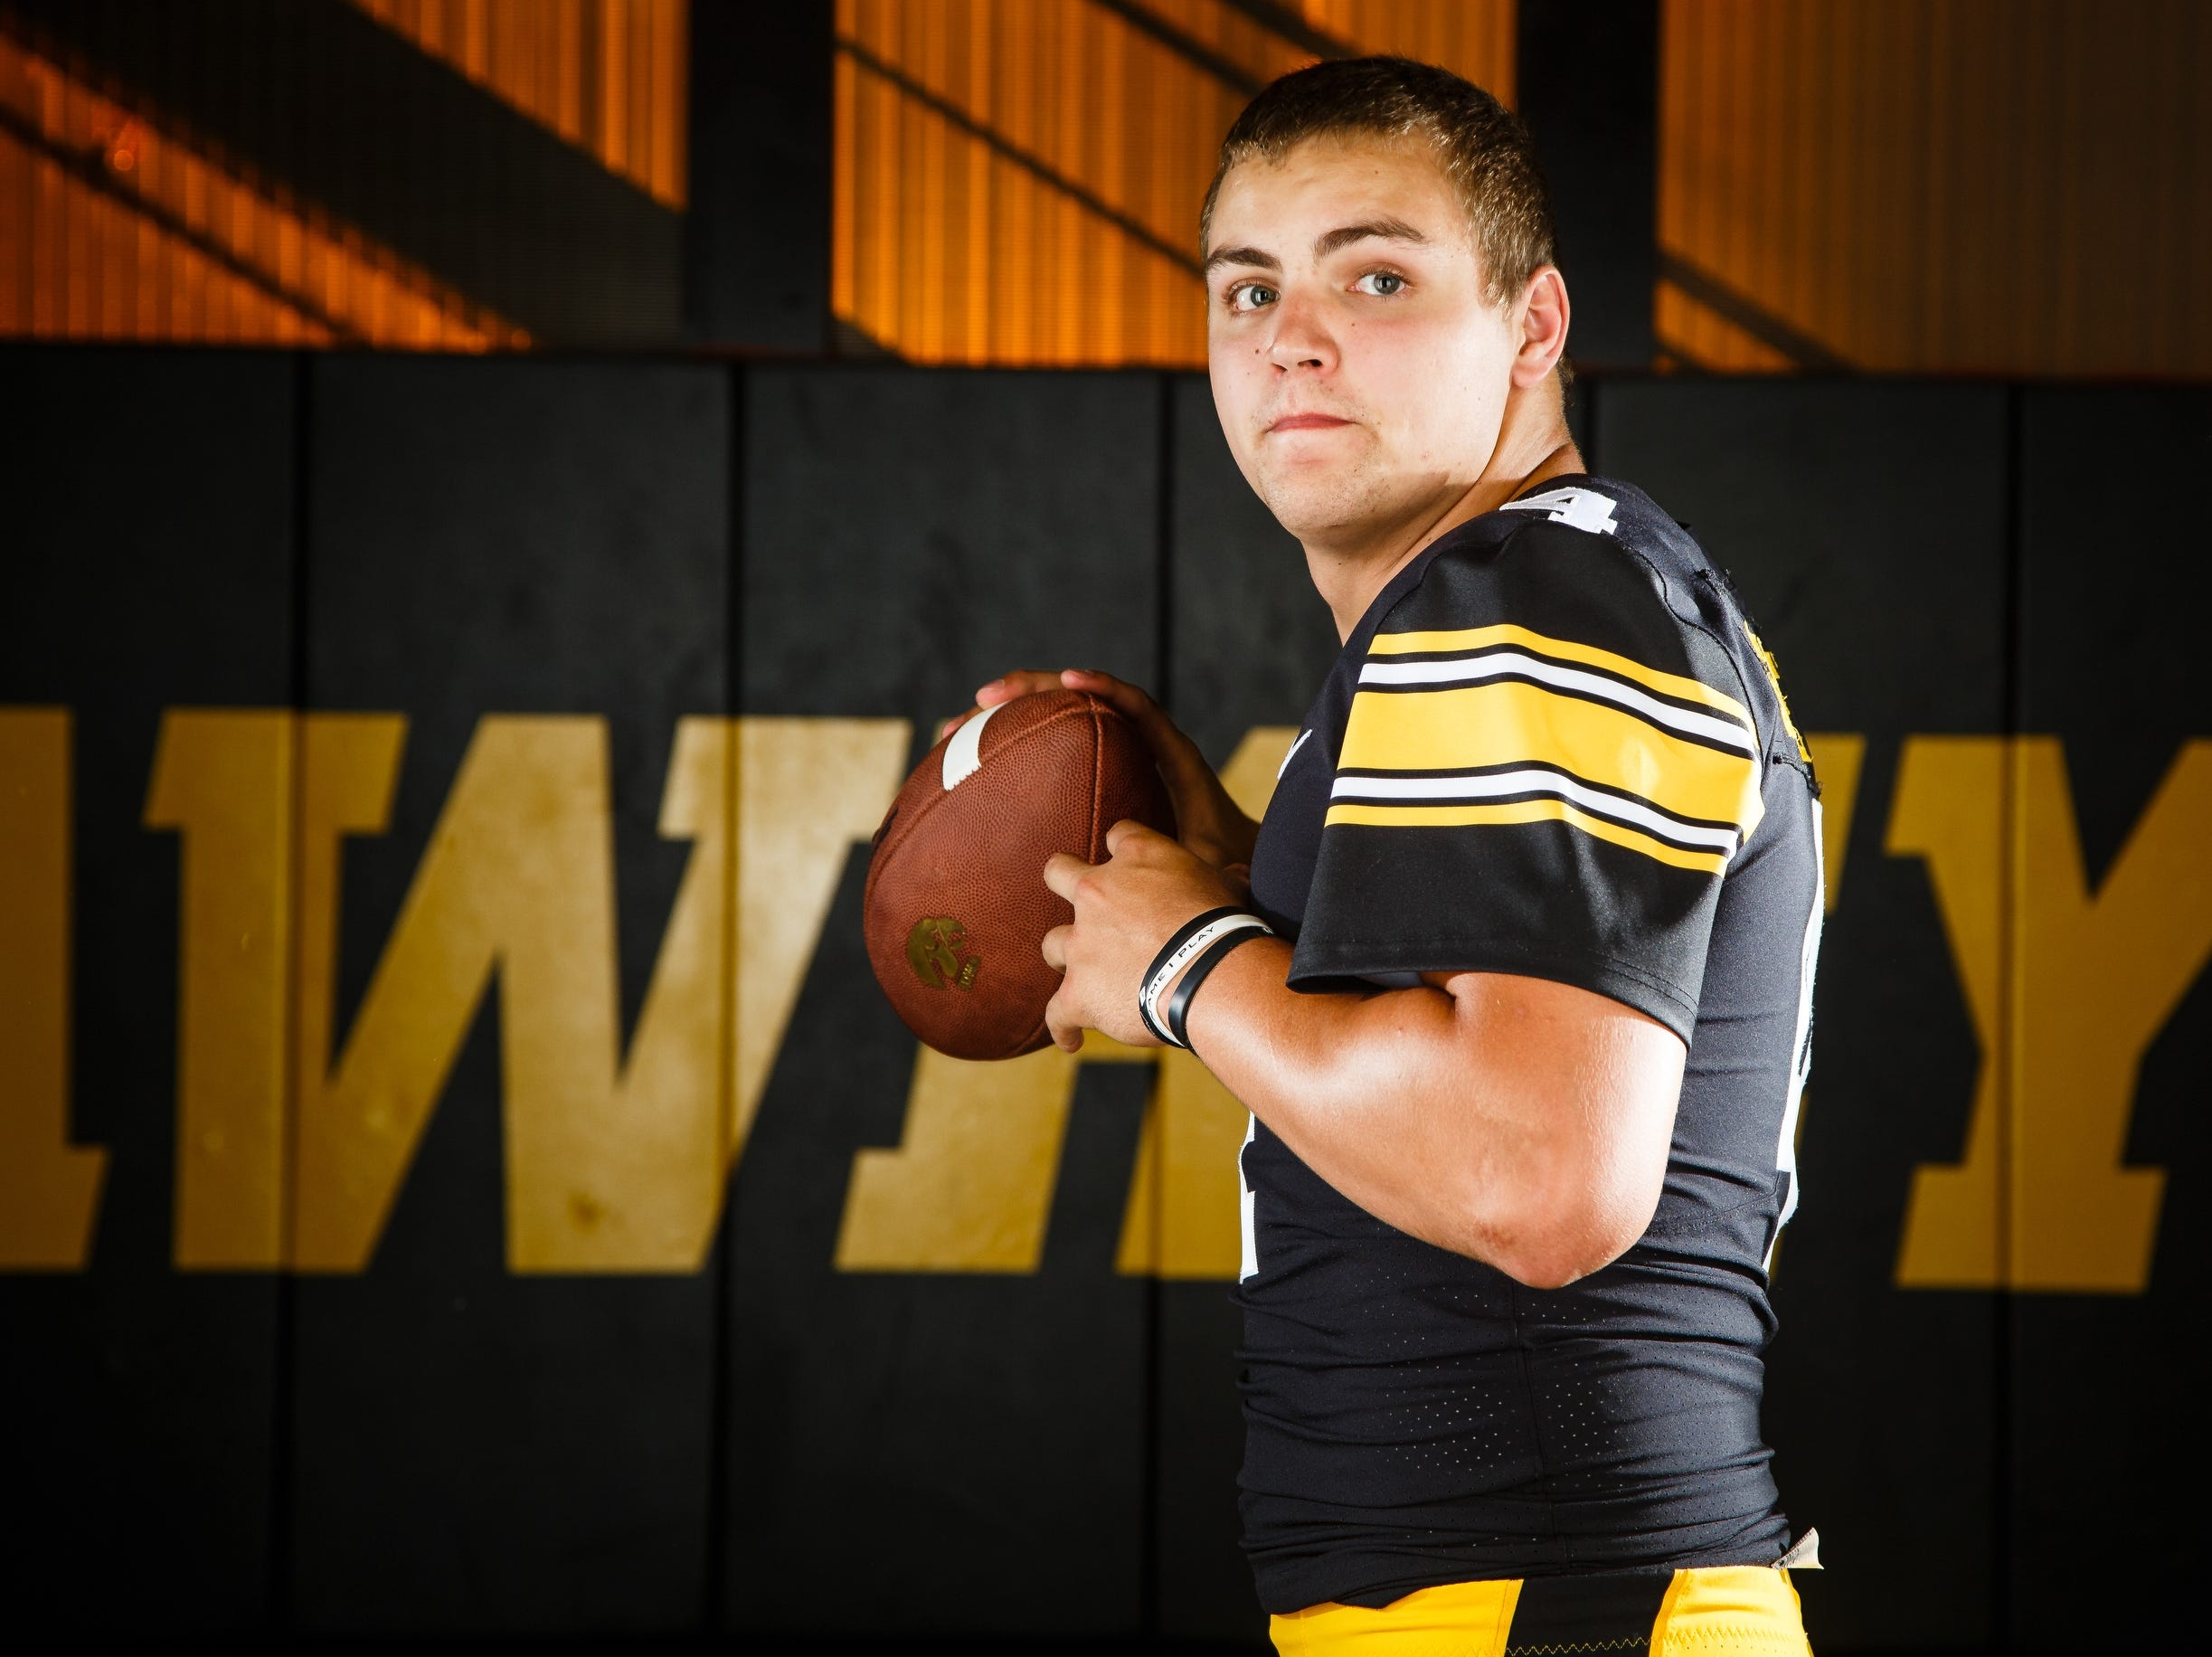 Iowa's Nate Stanely poses for a photo during the Iowa Football media day on Friday, Aug. 10, 2018 in Iowa City.